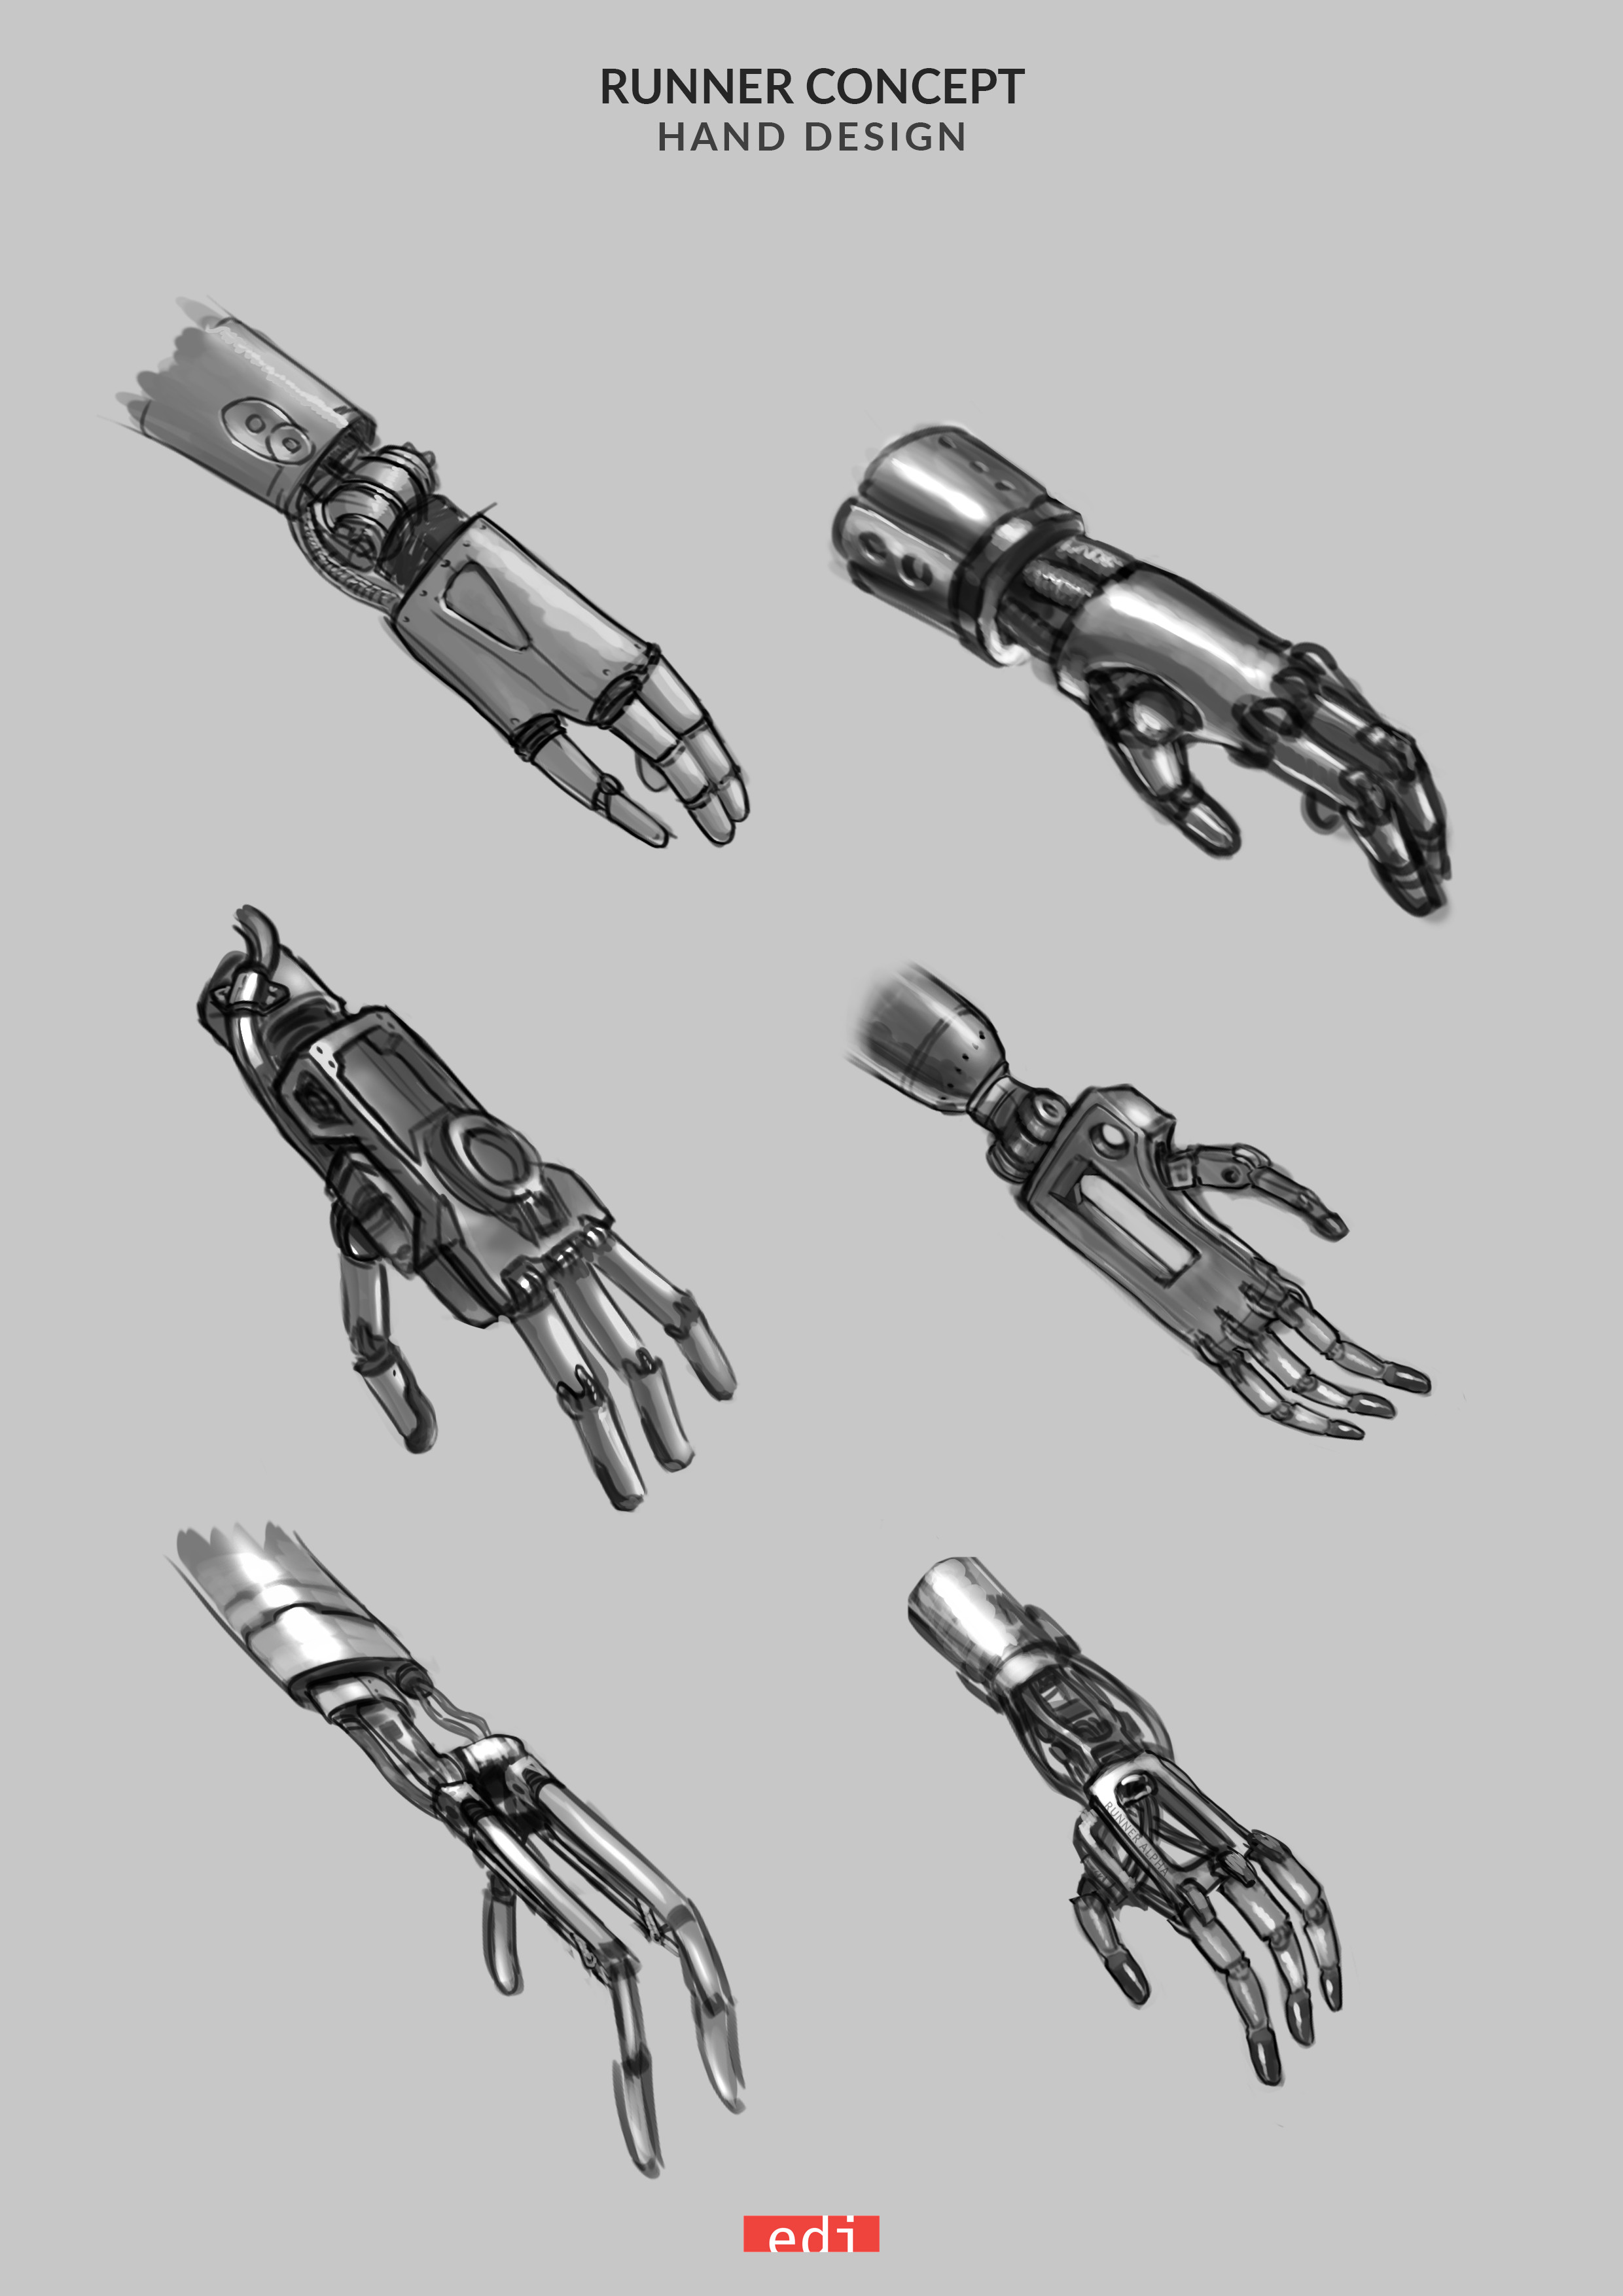 The hand needed to be a lightweight, purely functional element. These concepts explored various styles before finally settling on a combination of these models.